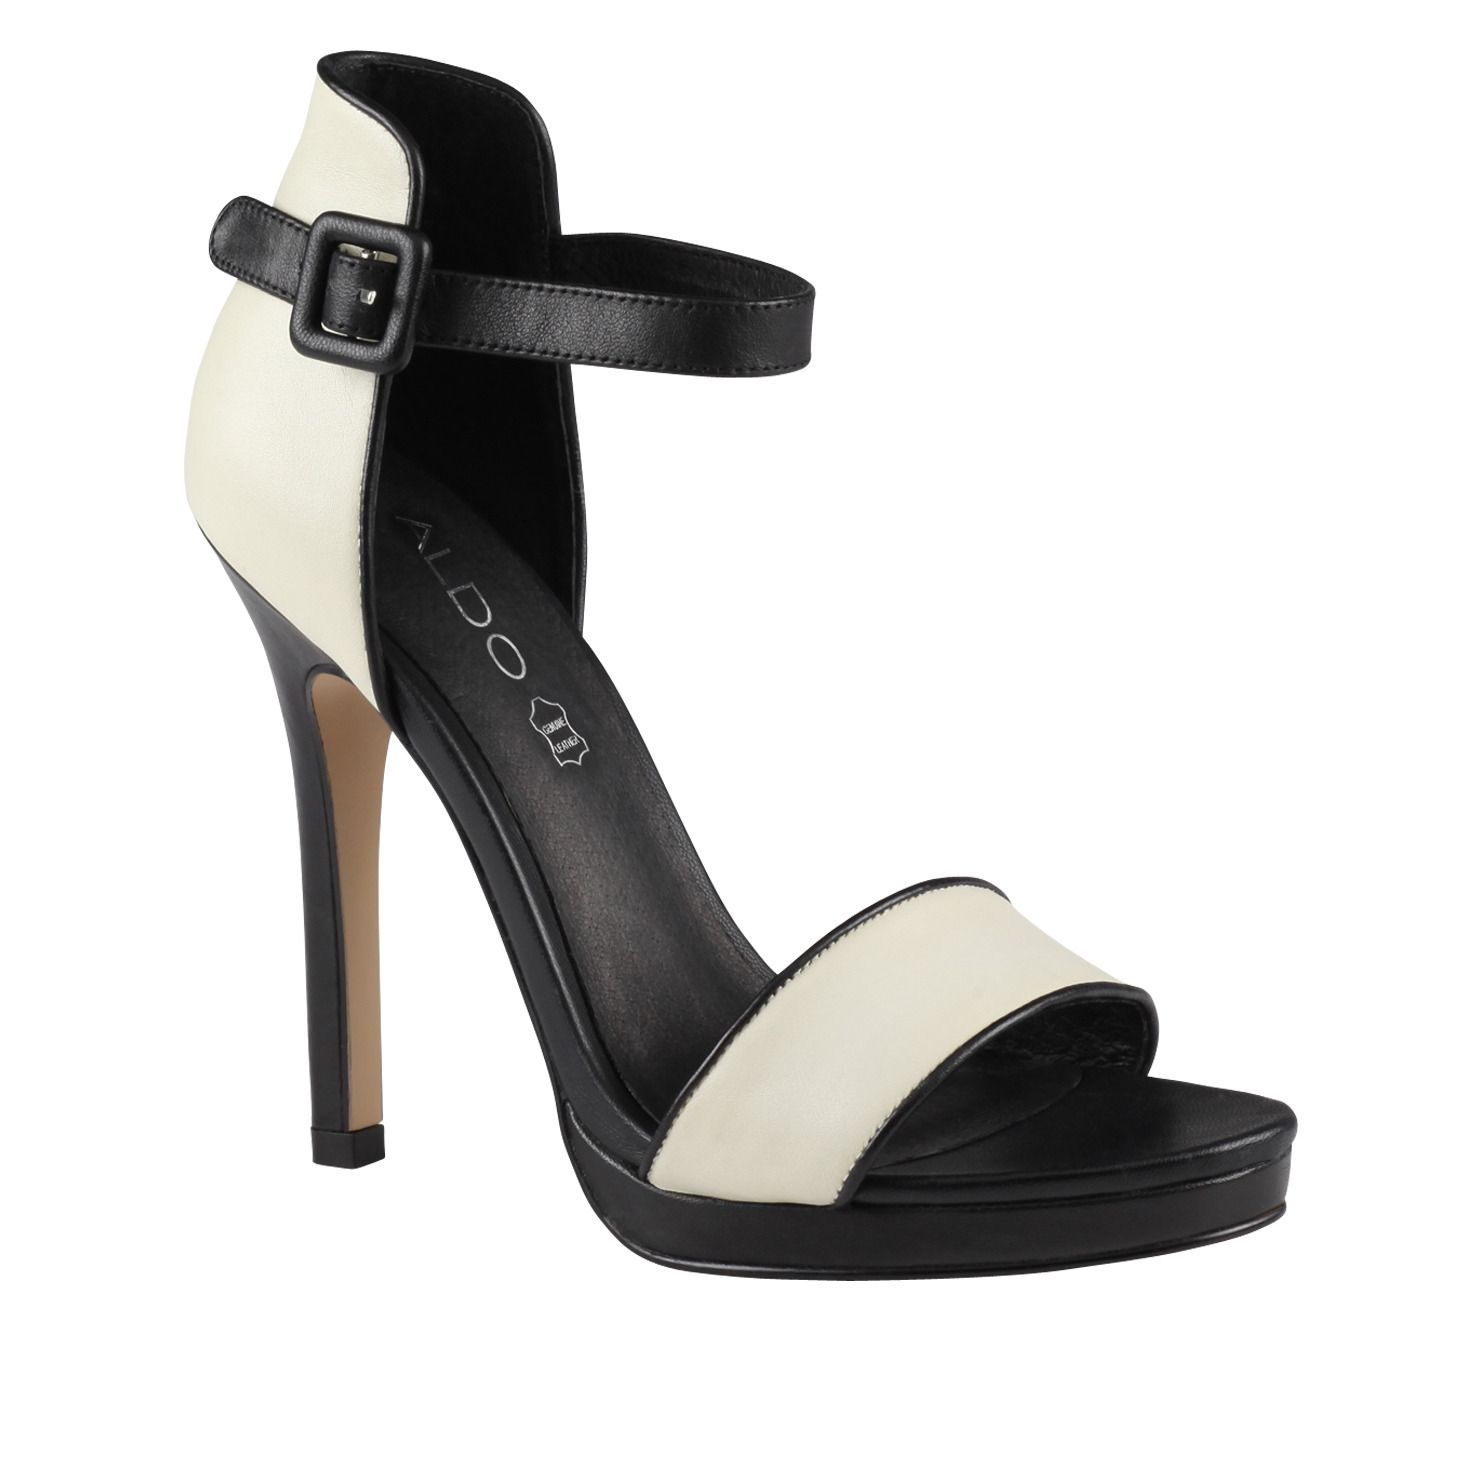 ELYZA women's high heels sandals for sale at ALDO Shoes